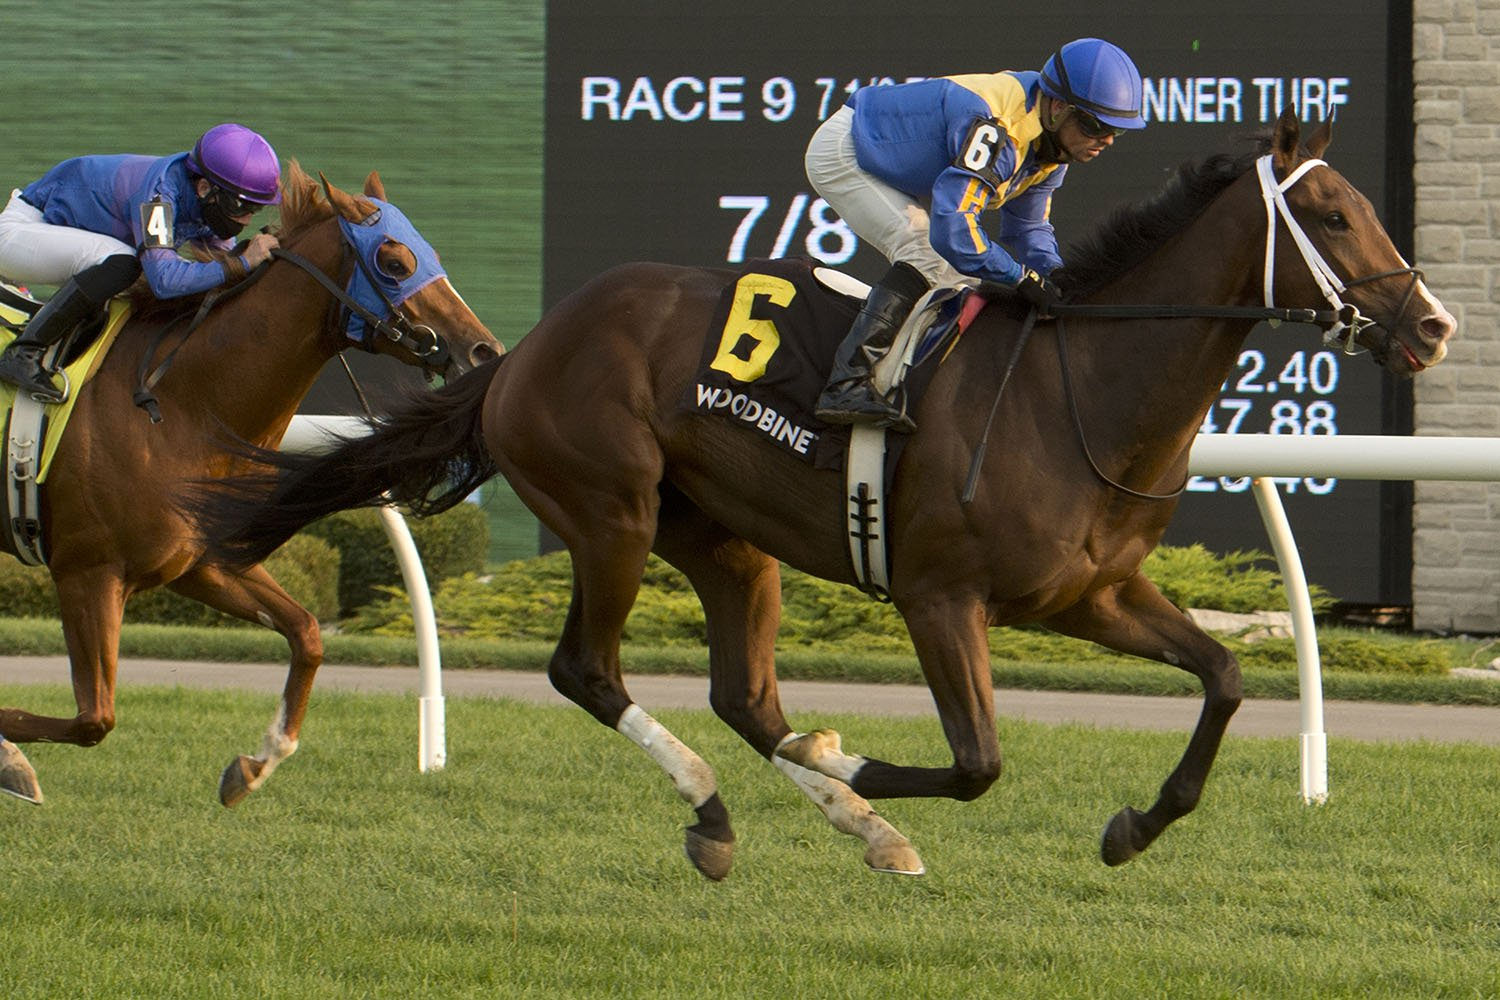 Avoman and jockey Justin Stein winning the Bull Page Stakes on September 29, 2020 at Woodbine Racetrack. (Michael Burns Photo)